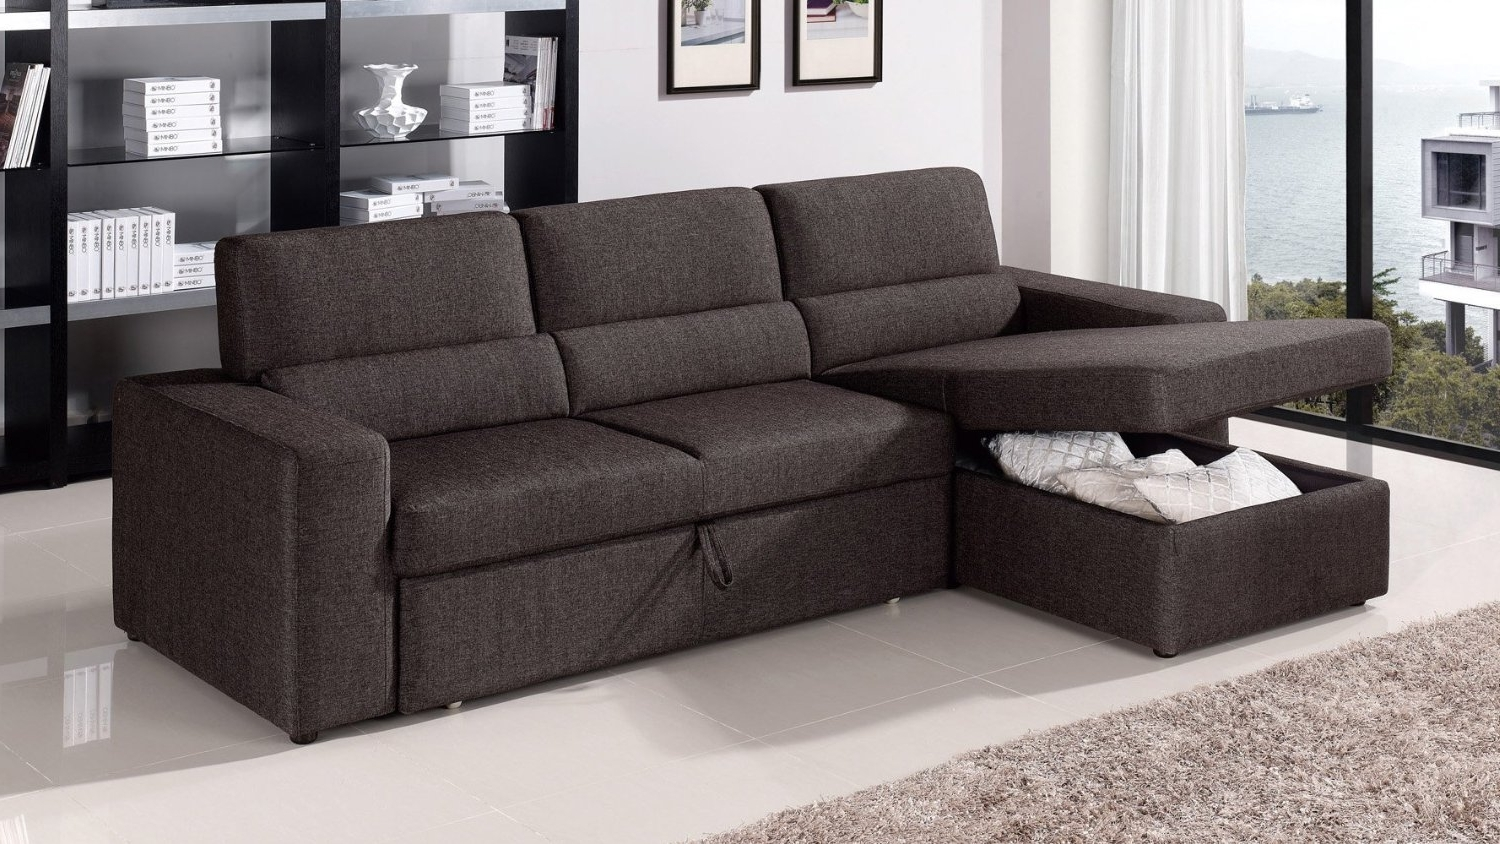 Sectional Sleeper Sofas With Ottoman Pertaining To Newest Sectional Sleeper Sofa Queen Leather Sectional Sleeper Sofa Fabric (View 6 of 15)